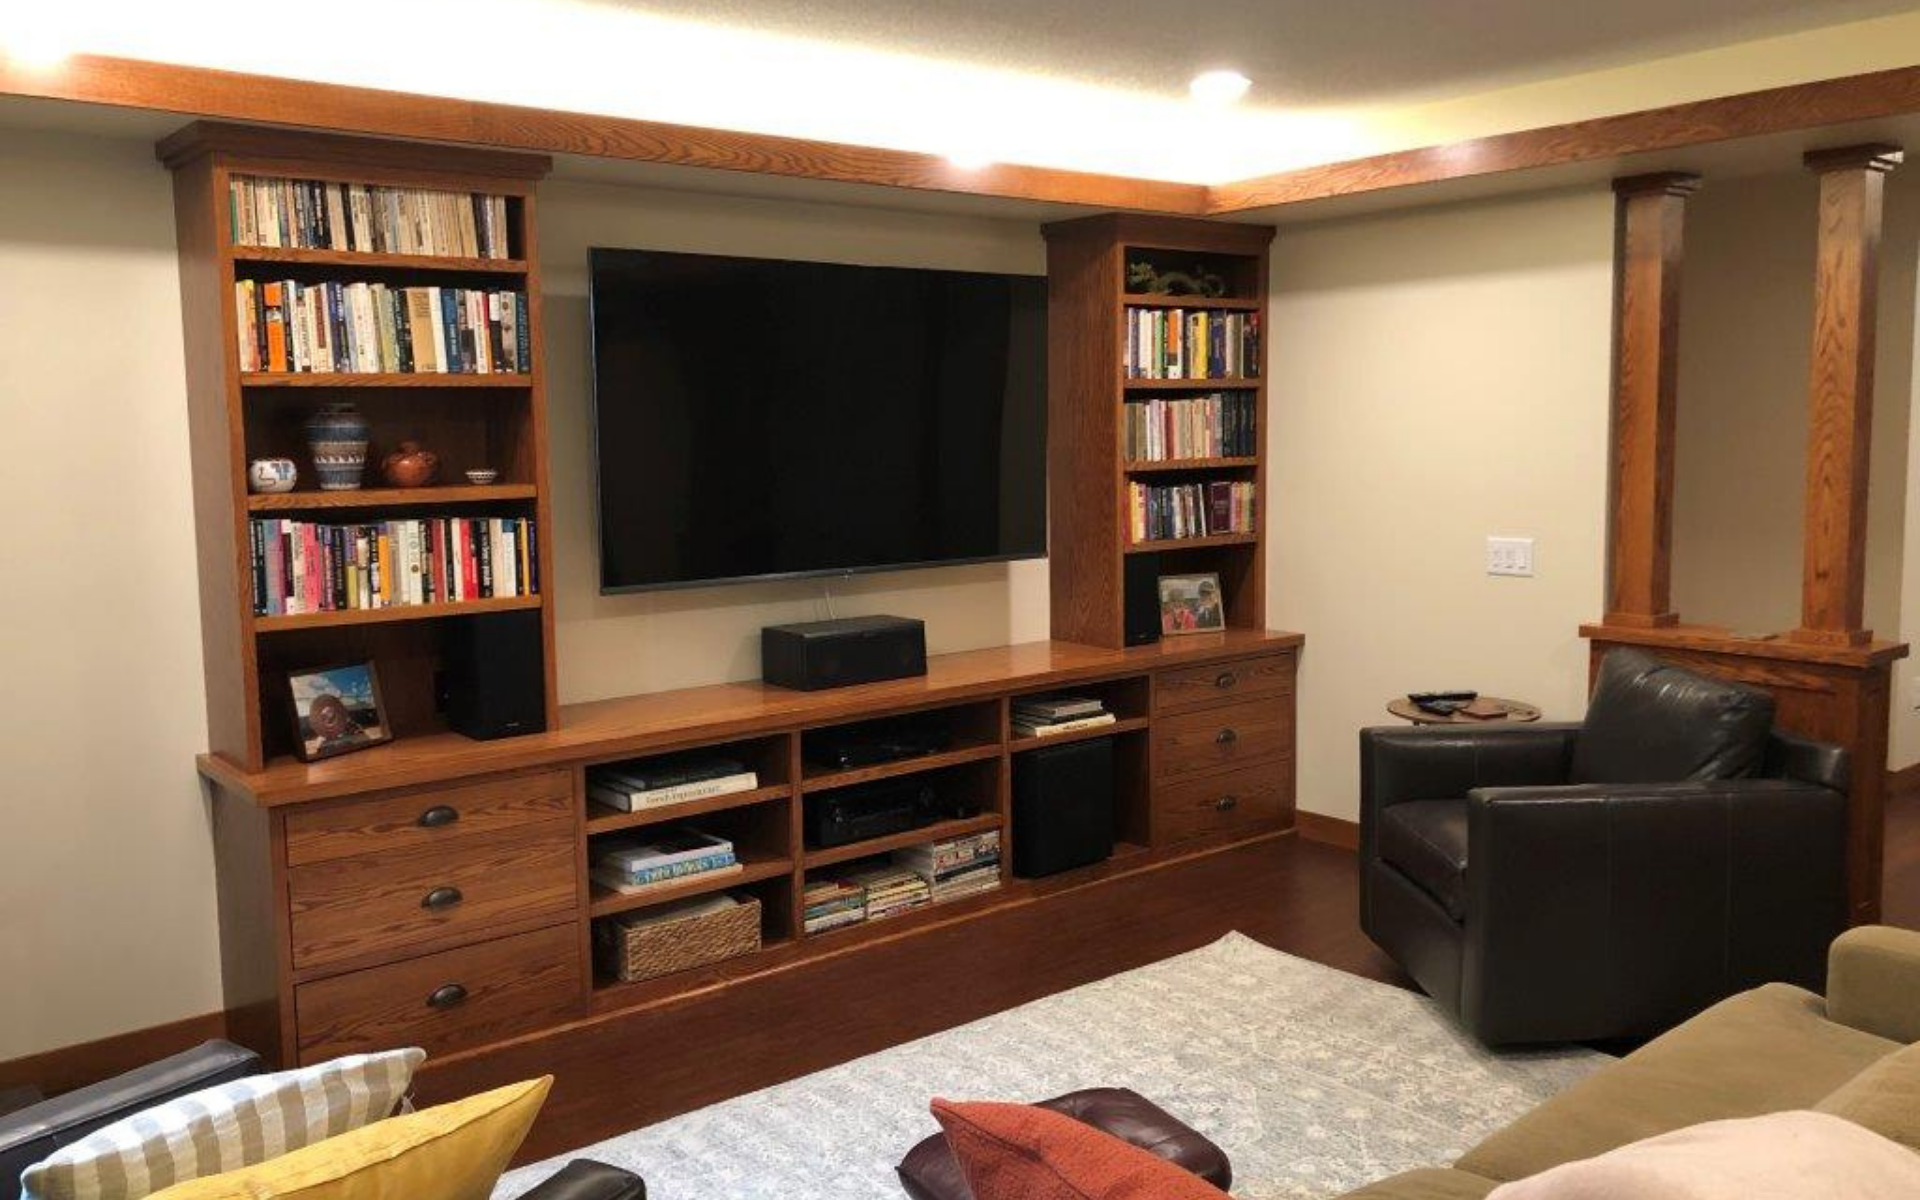 Home Theatre: The Before and After Difference